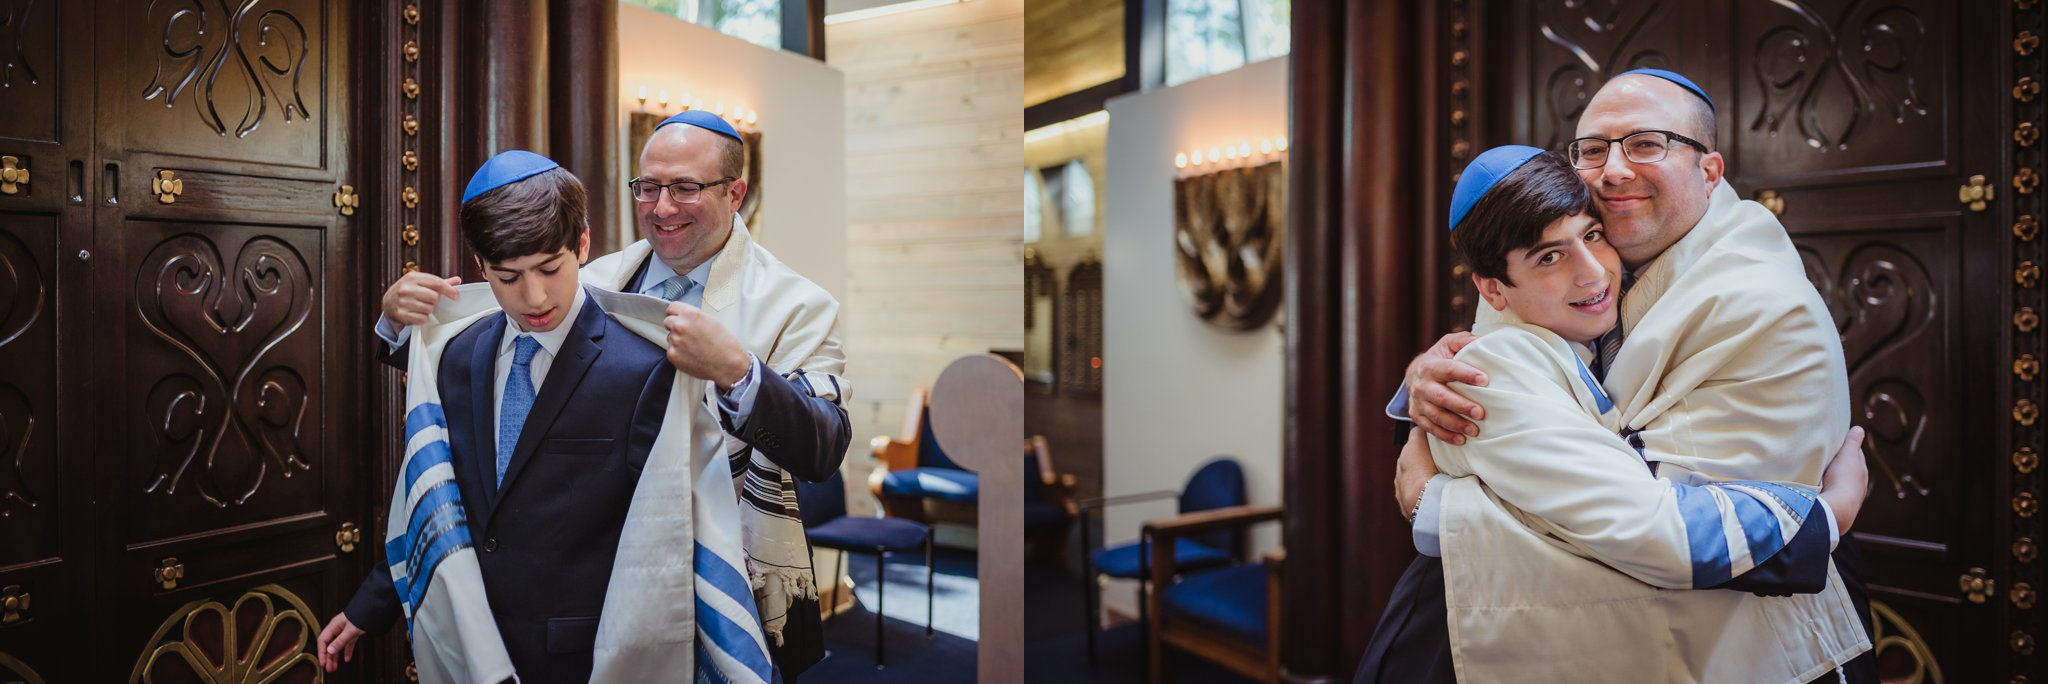 The bar mitzvah boy stands on the bimah with his Dad for Rose Trail Images before his ceremony at Temple Beth Or in Raleigh, North Carolina.